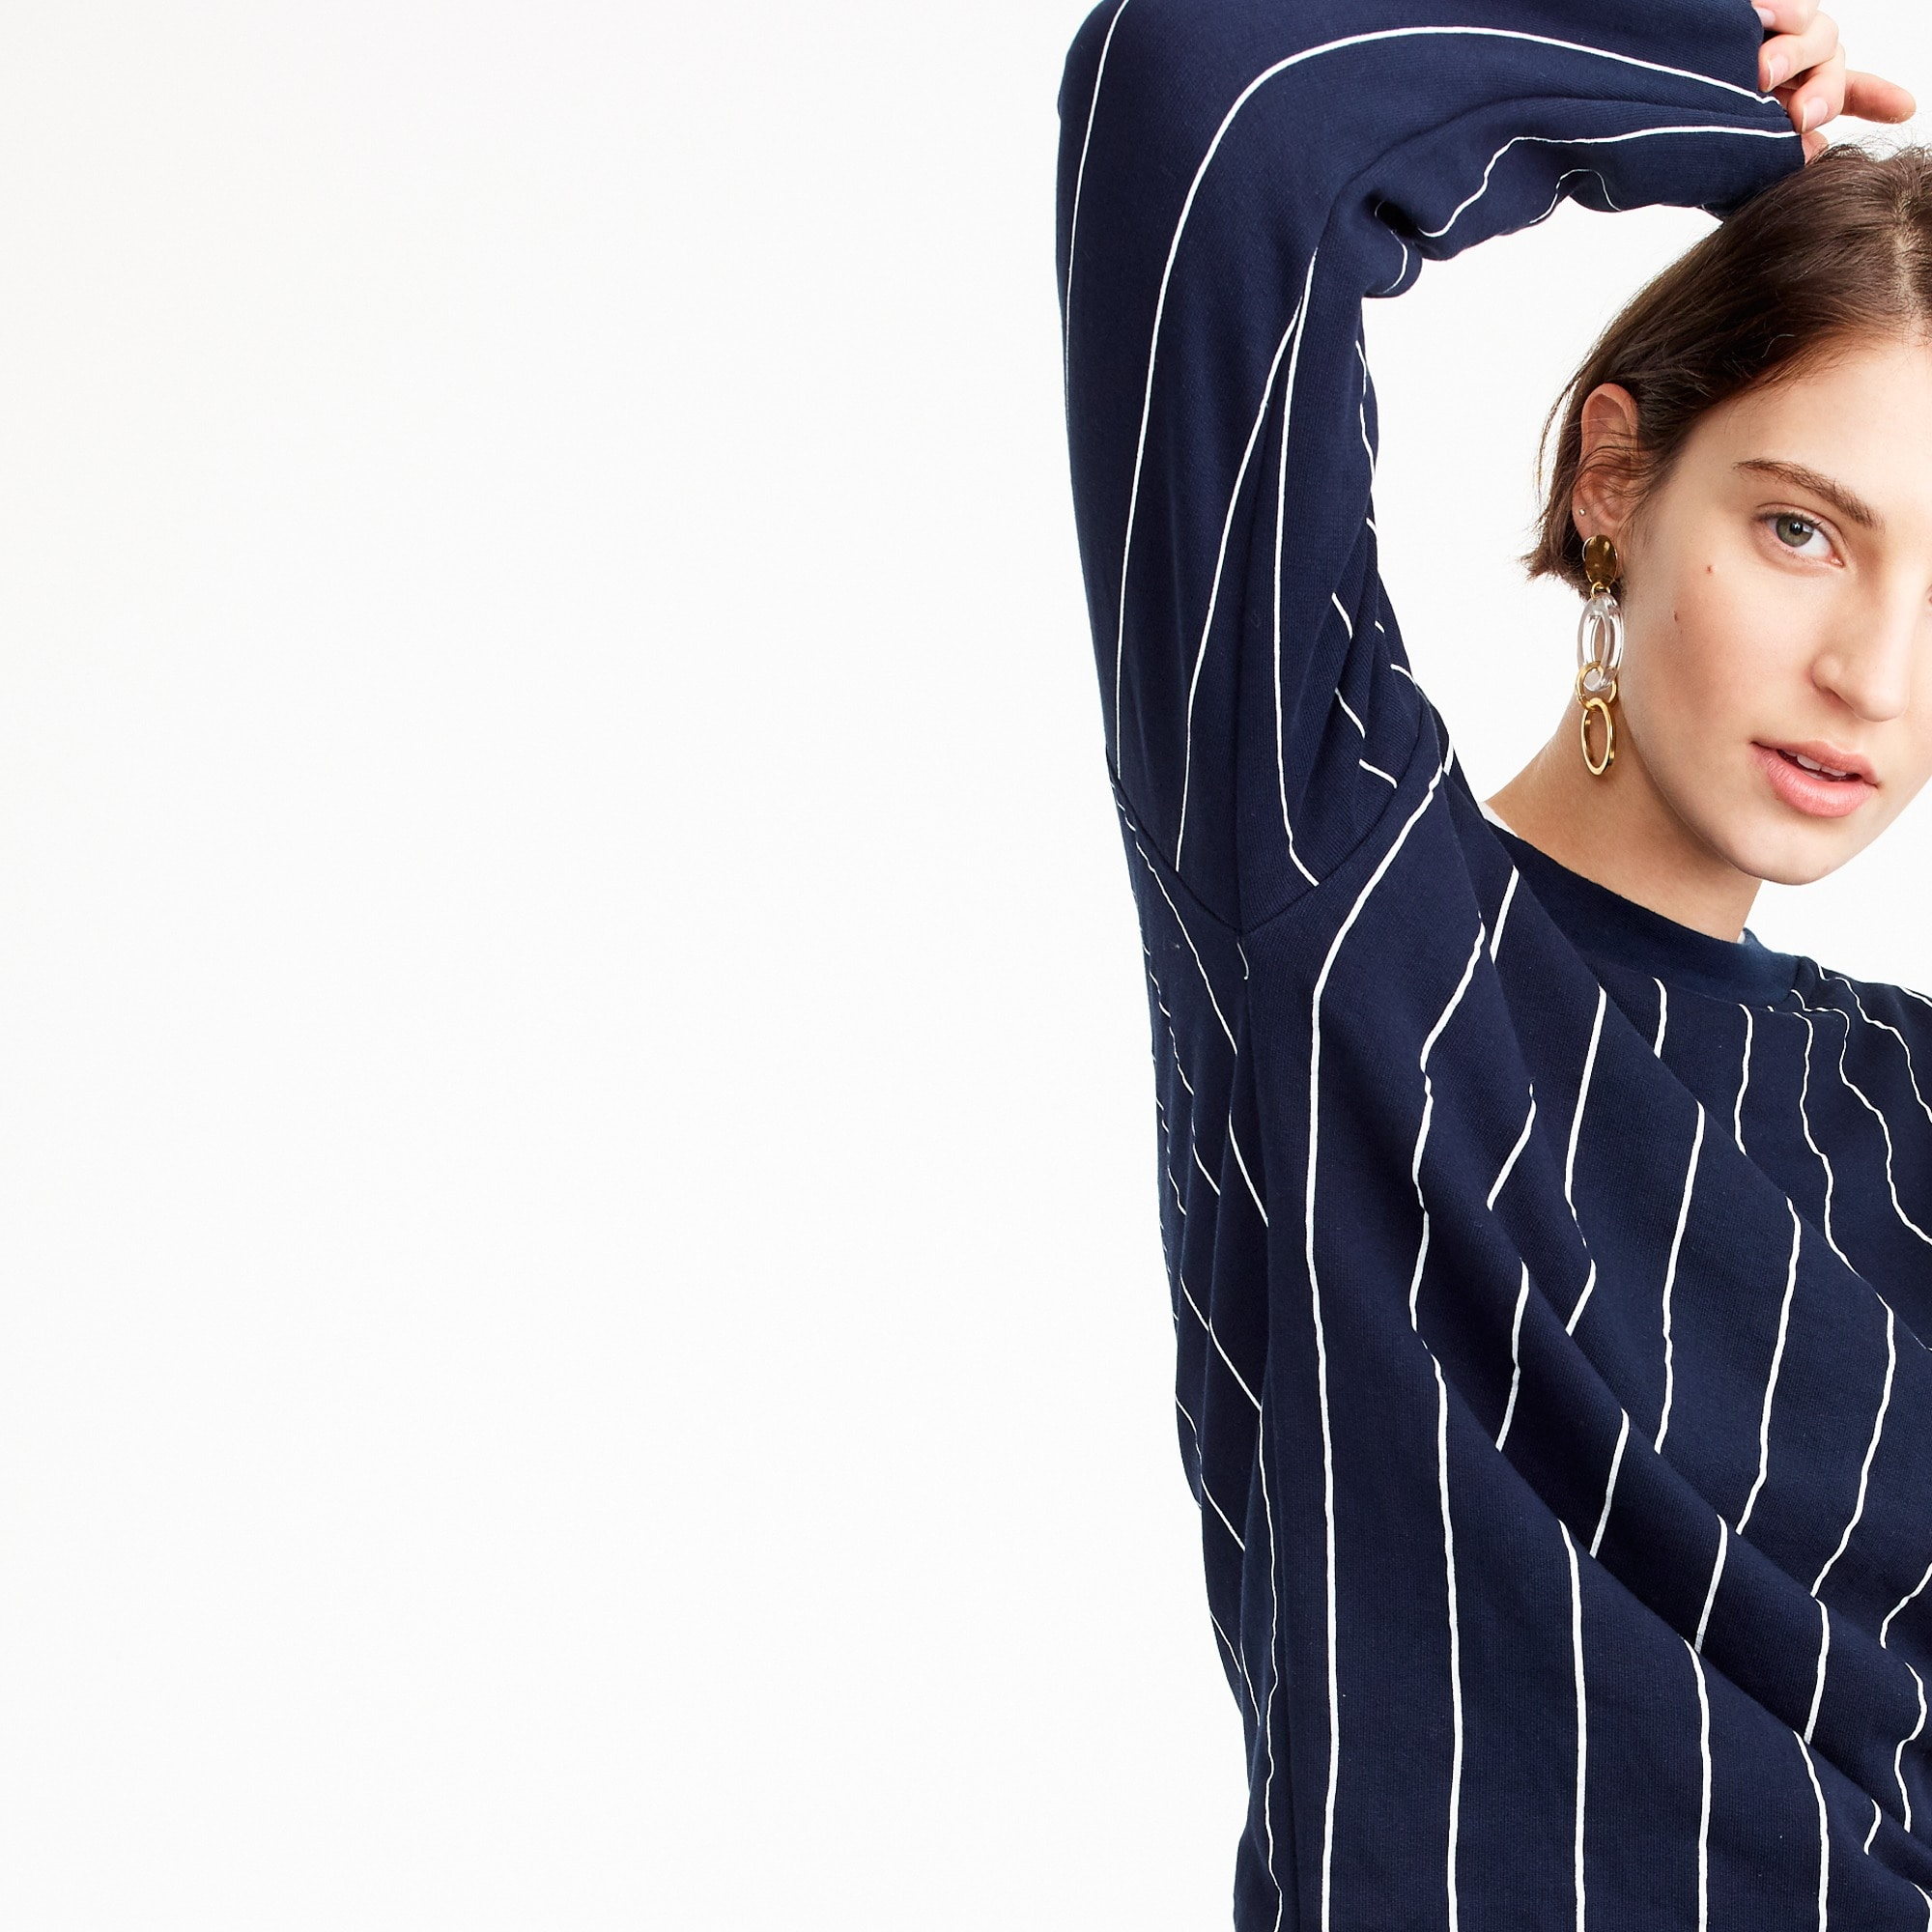 Image 3 for Crewneck sweatshirt in pinstripe